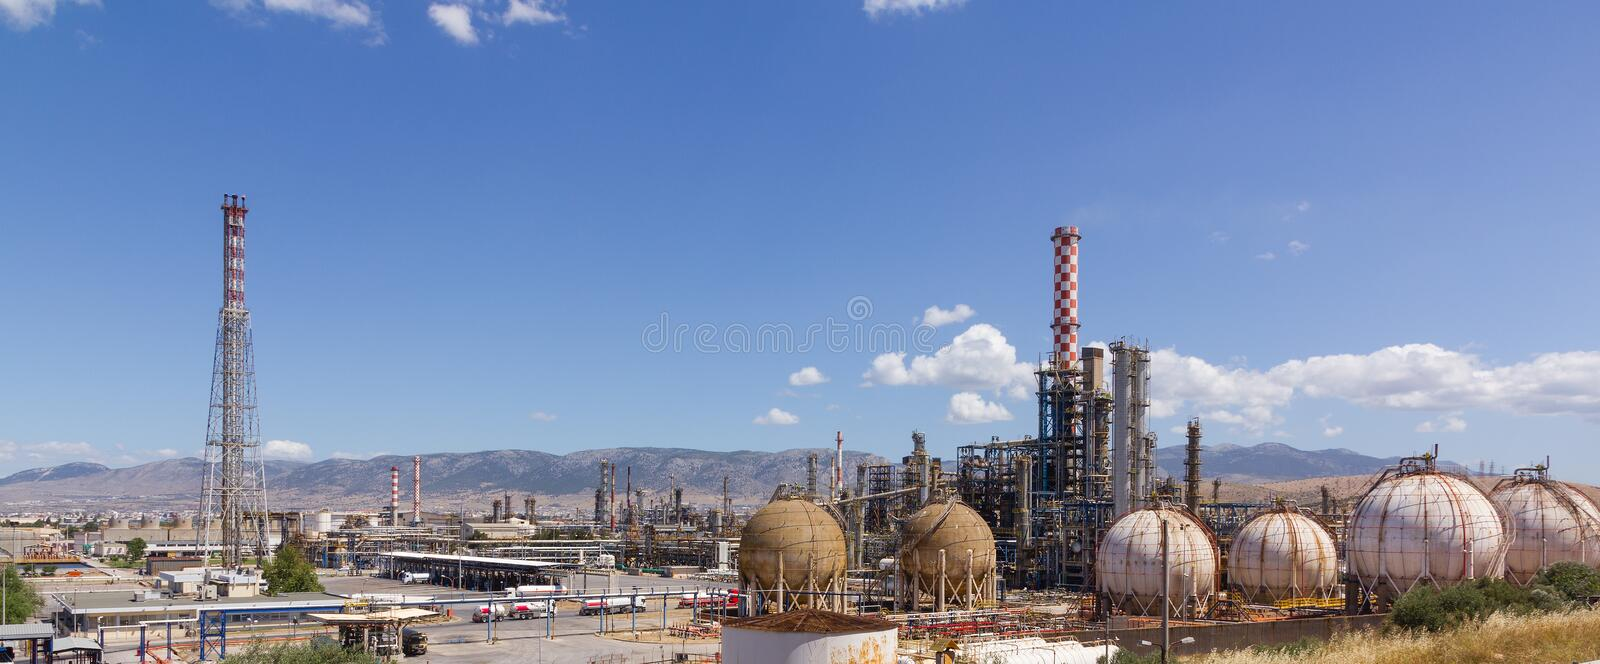 Panoramic view of an oil refinery. Panoramic view of a large oil refinery complex royalty free stock photography